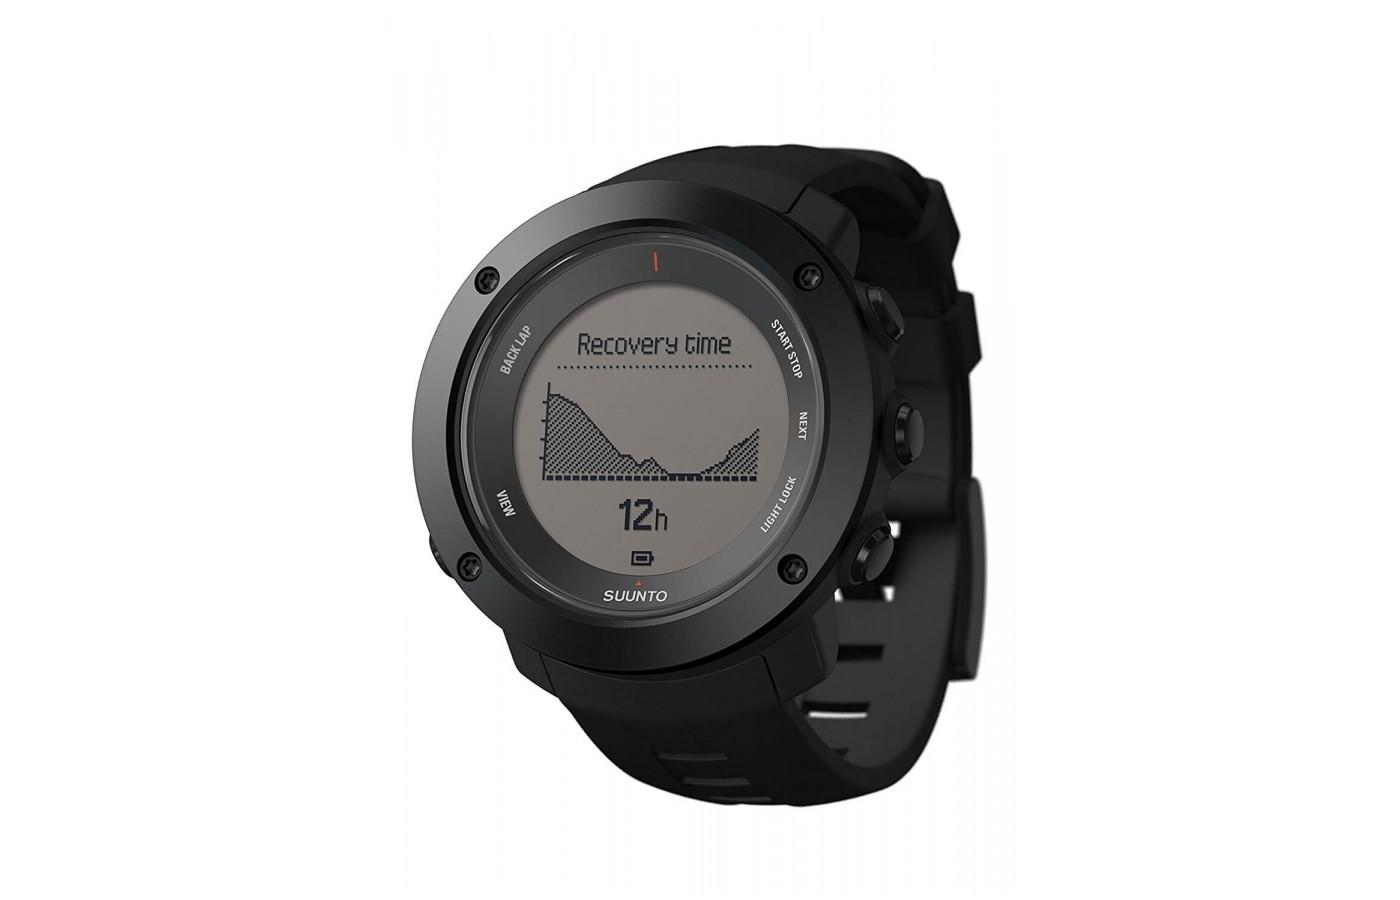 The Suunto Ambit3 Vertical is a comfortable watch